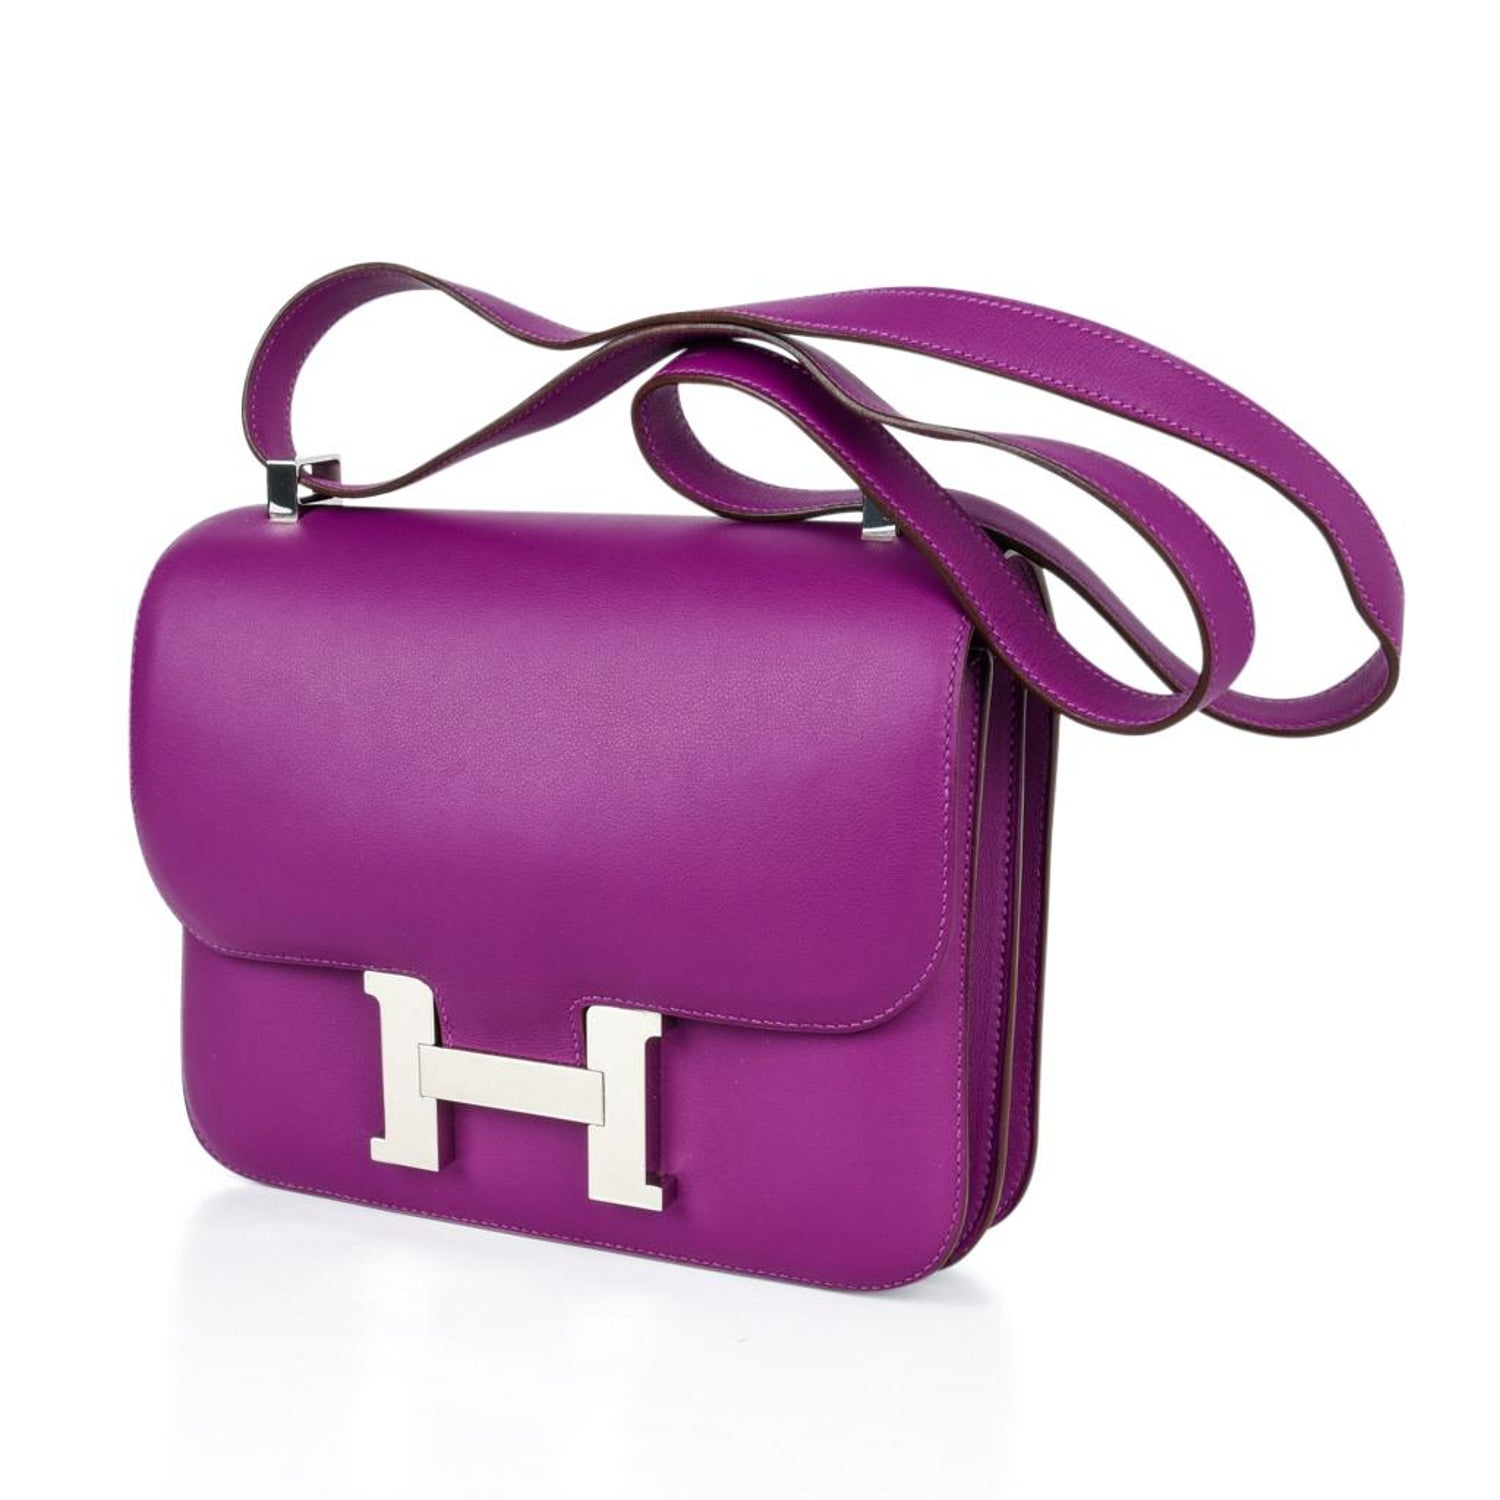 b68f15936 Hermes Constance Rare 24 Anemone Double Gusset Palladium For Sale at 1stdibs